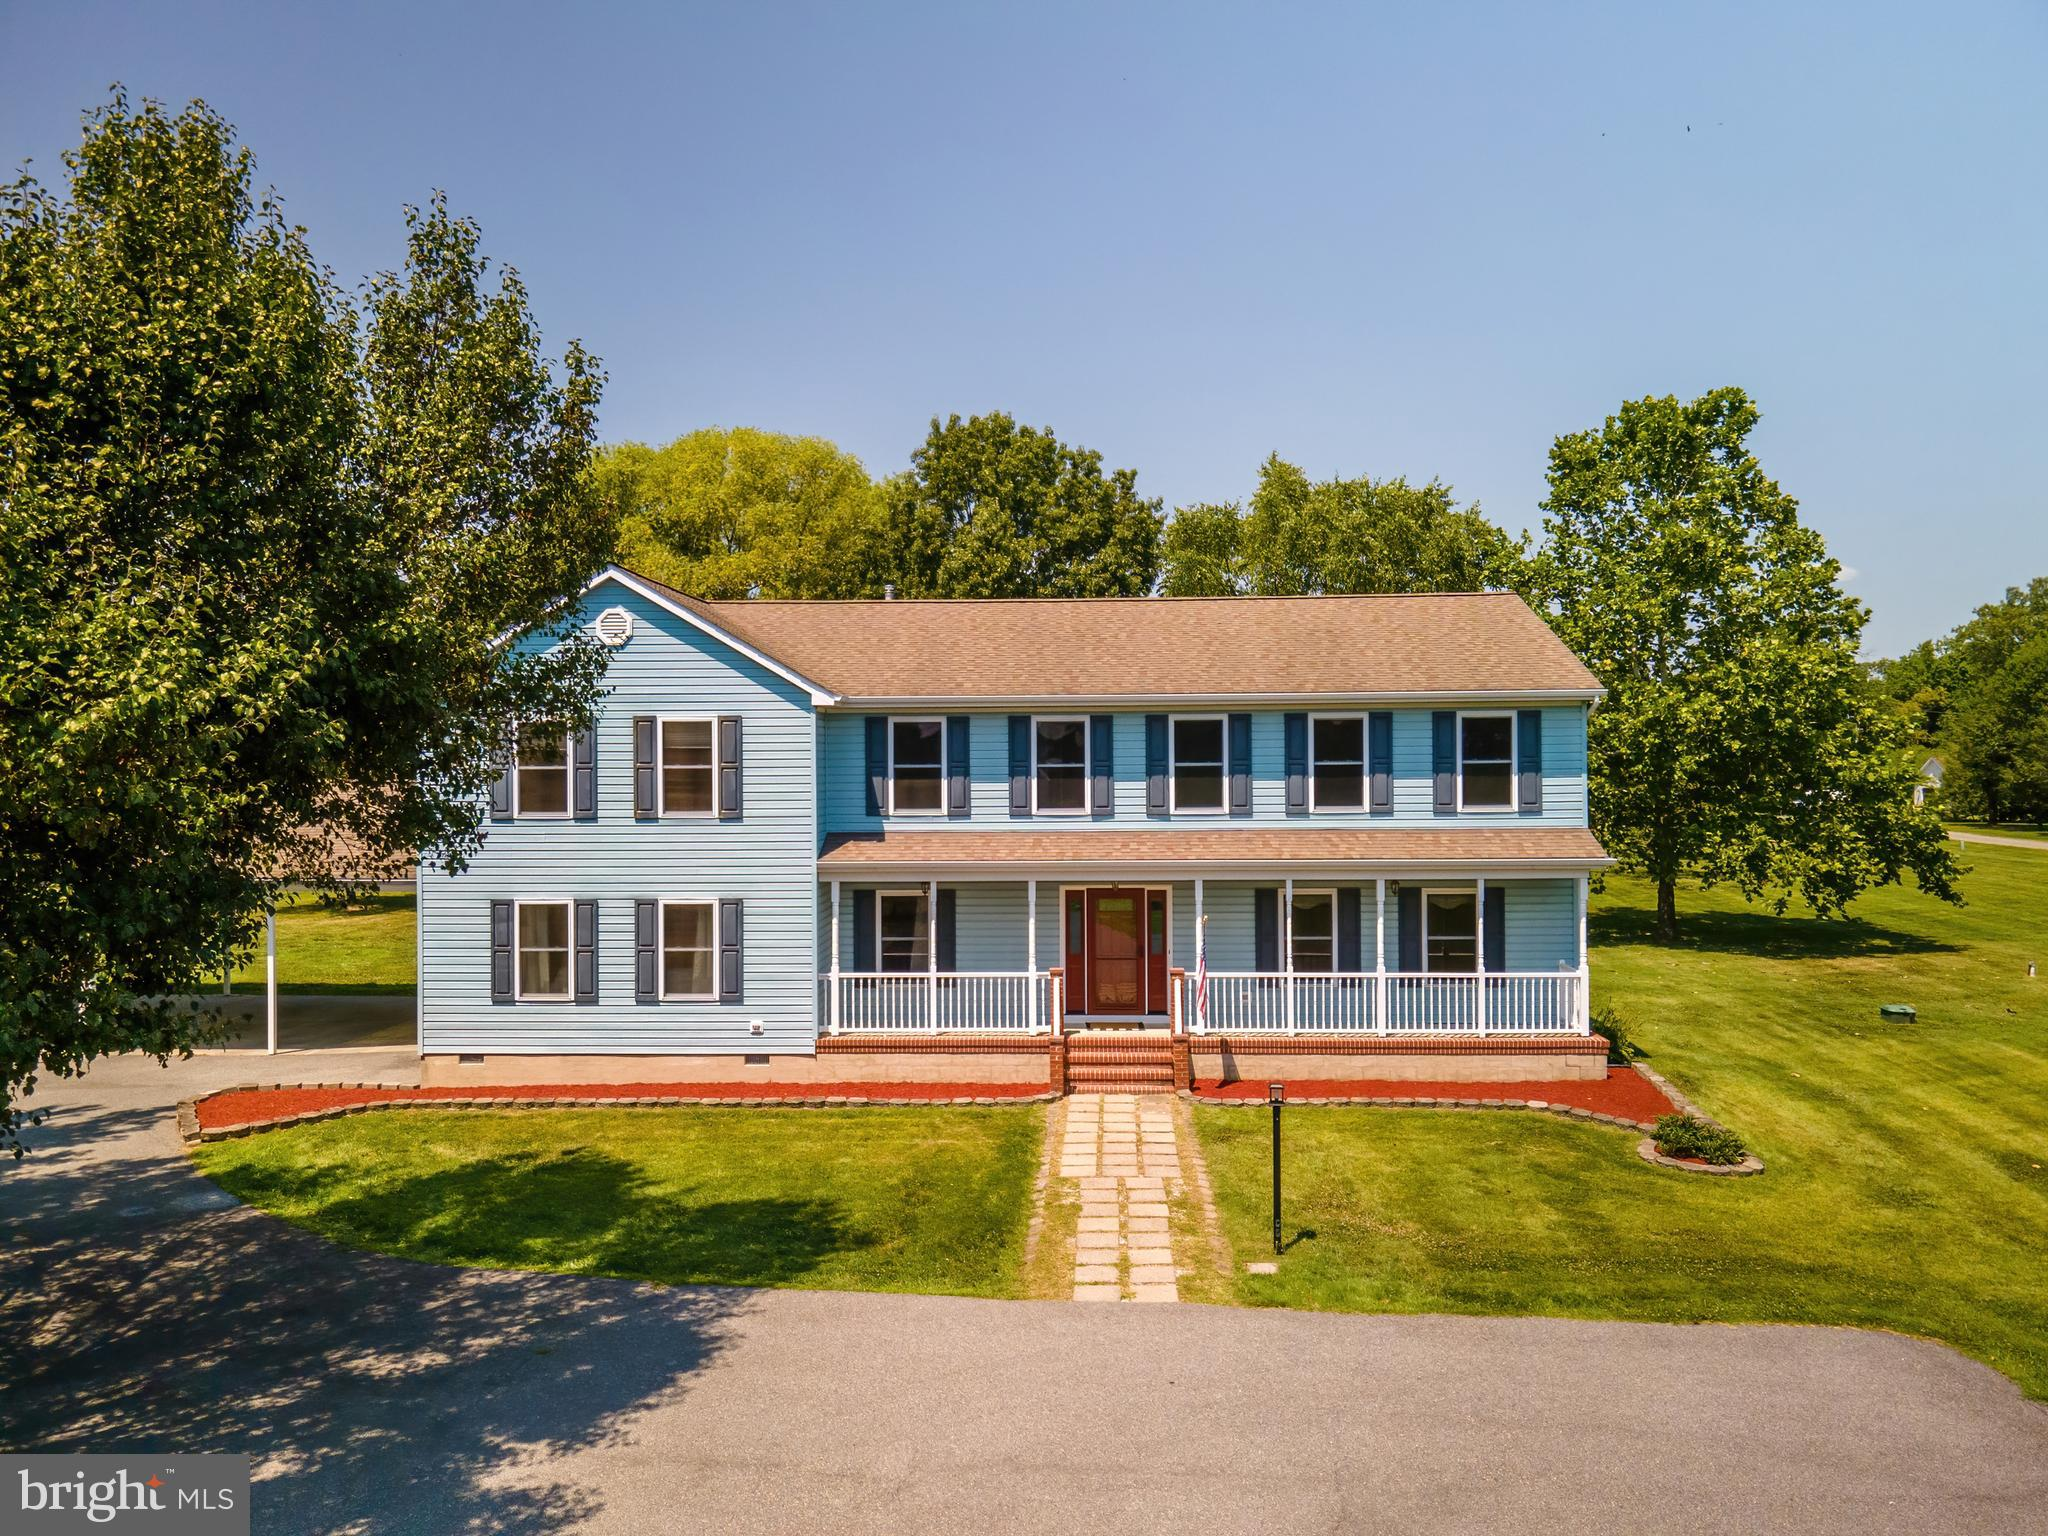 Newly listed and OPEN this weekend! Sat 7/31 and Sun 8/1,  11am-1pm. Remarkable Home - Ready for her